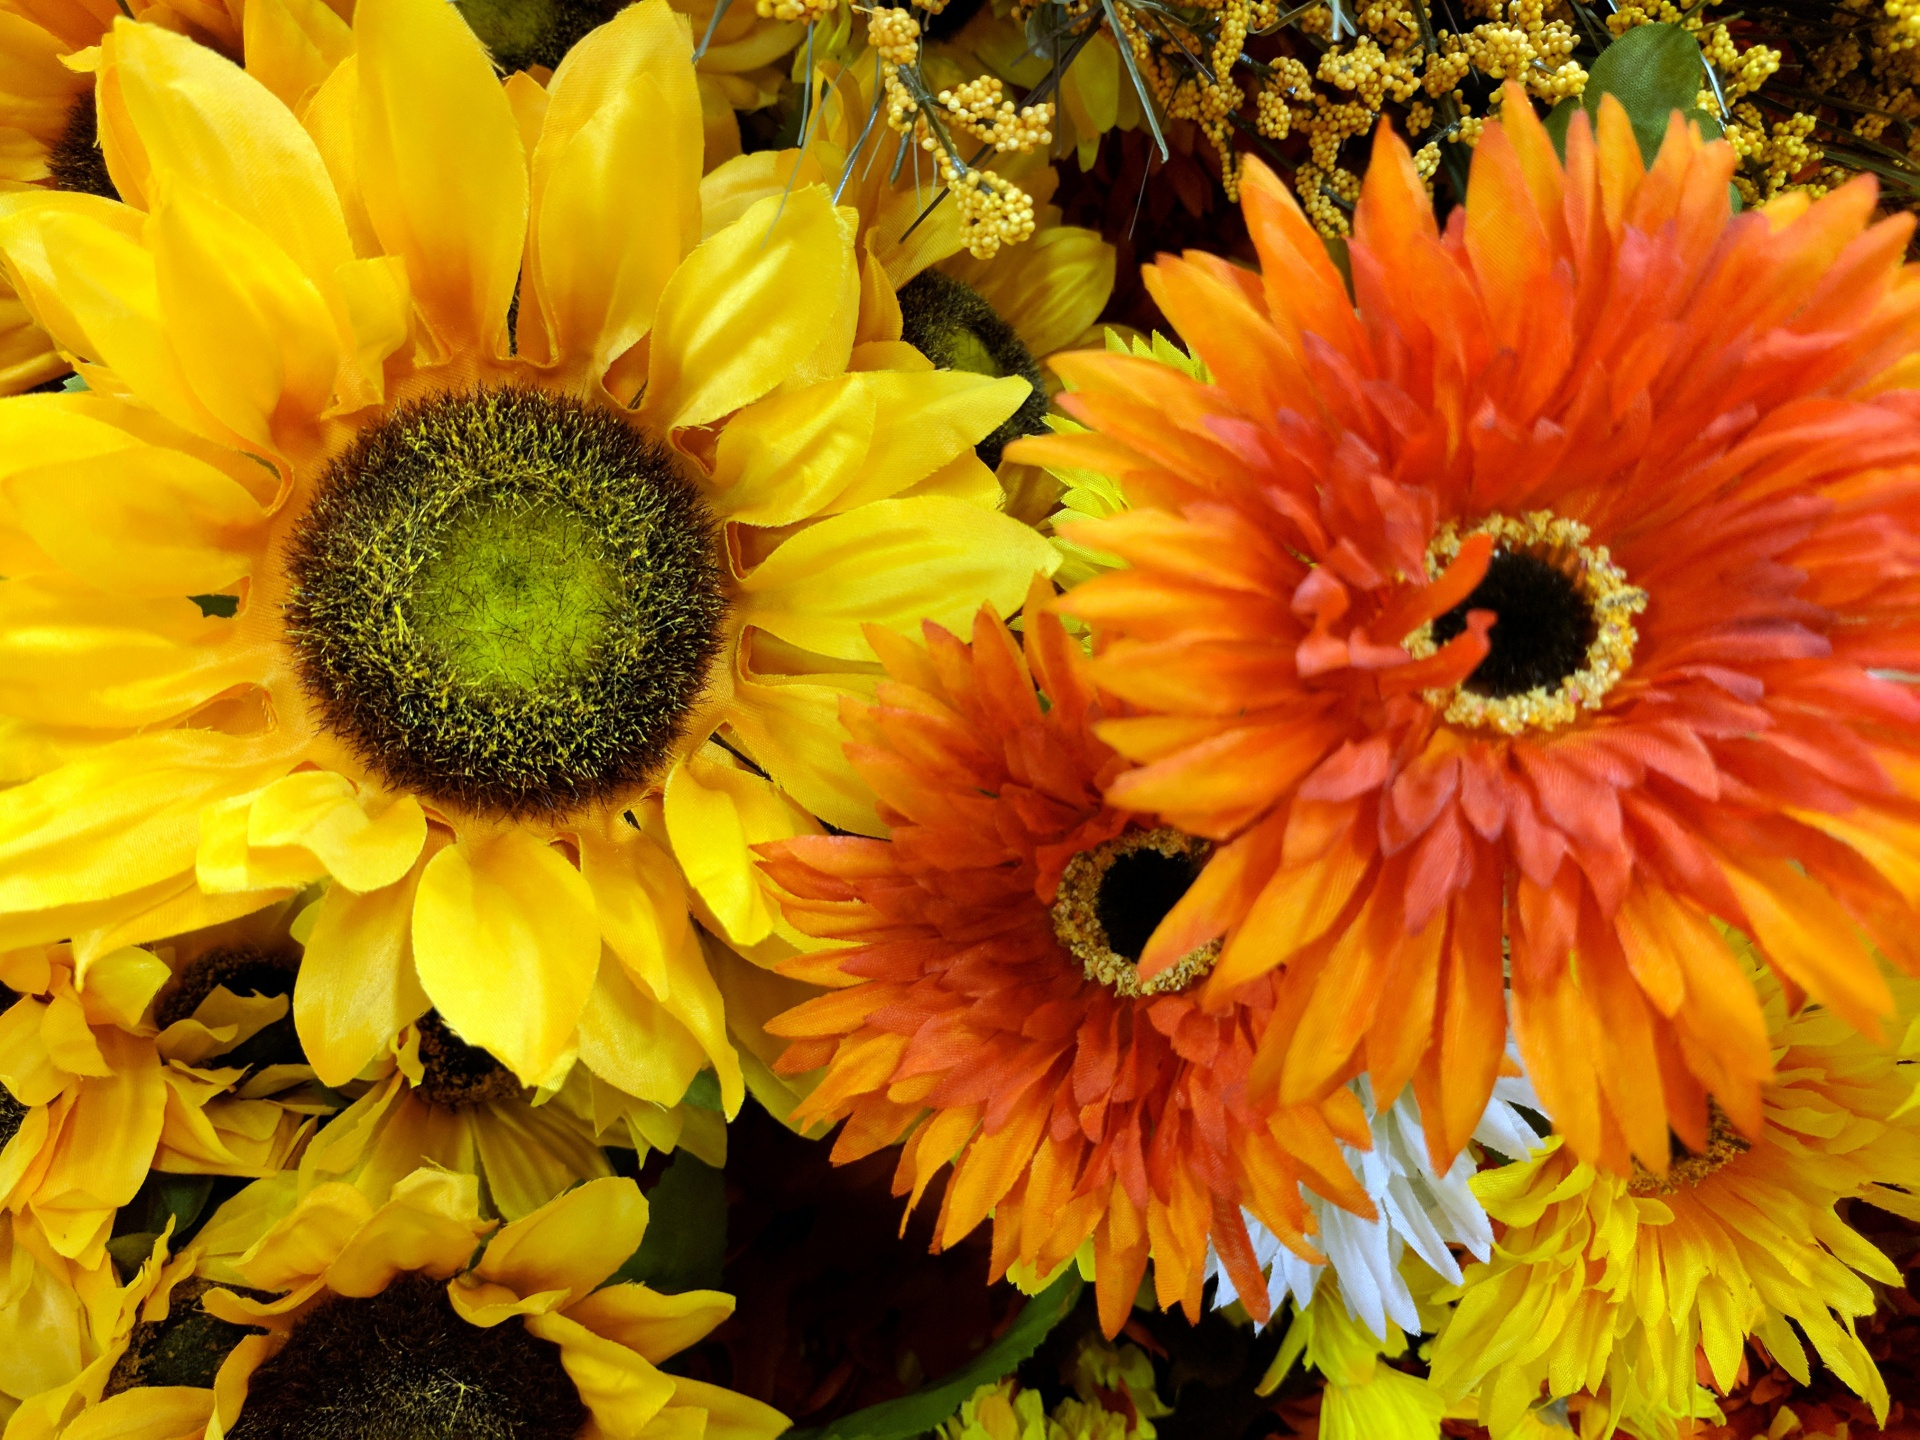 Fall Desktop Wallpaper With Sunflowers Autumn Flowers Background Free Stock Photo Public Domain